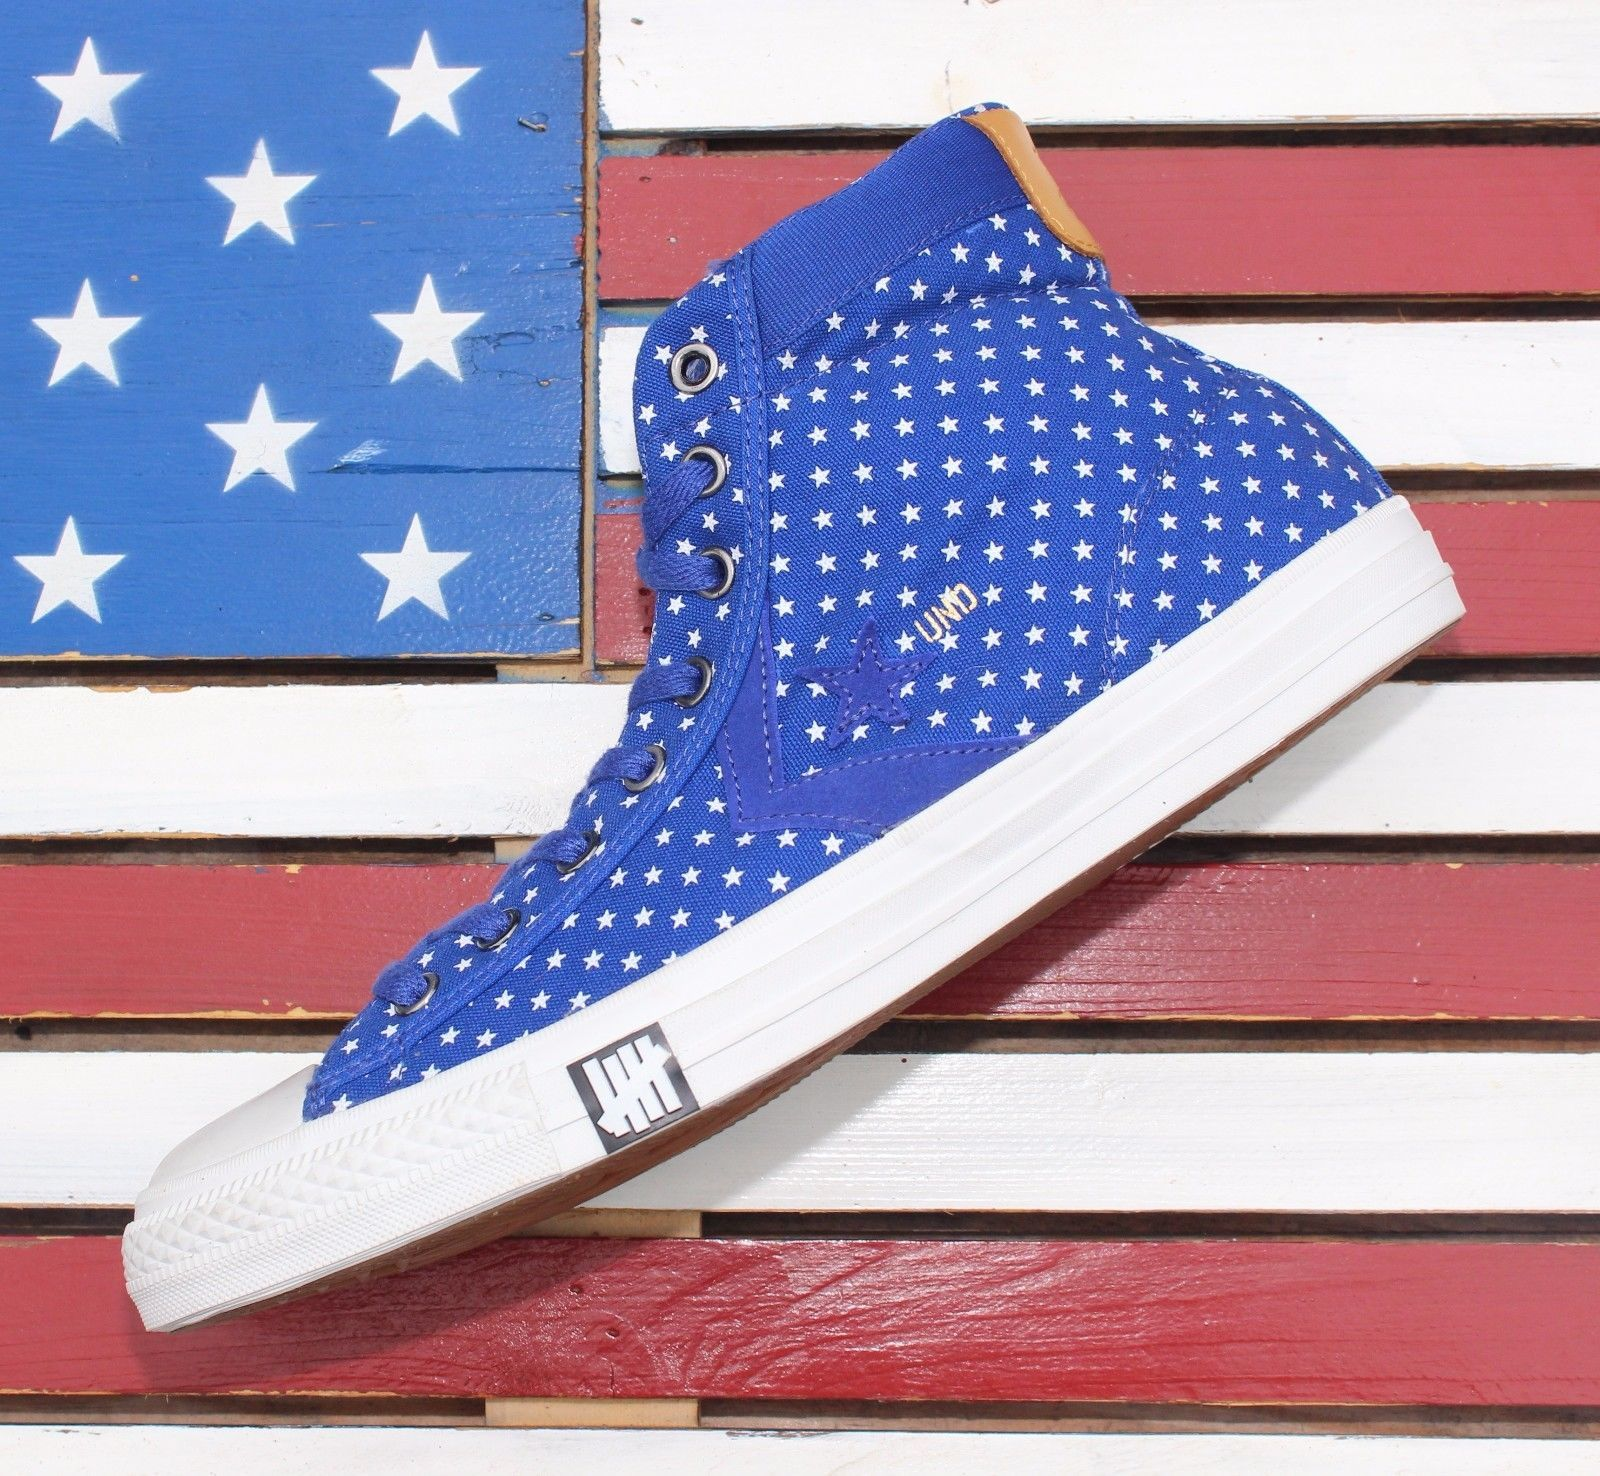 cf1a1a36c2de Undefeated X Converse Born Not Made Undftd and 50 similar items